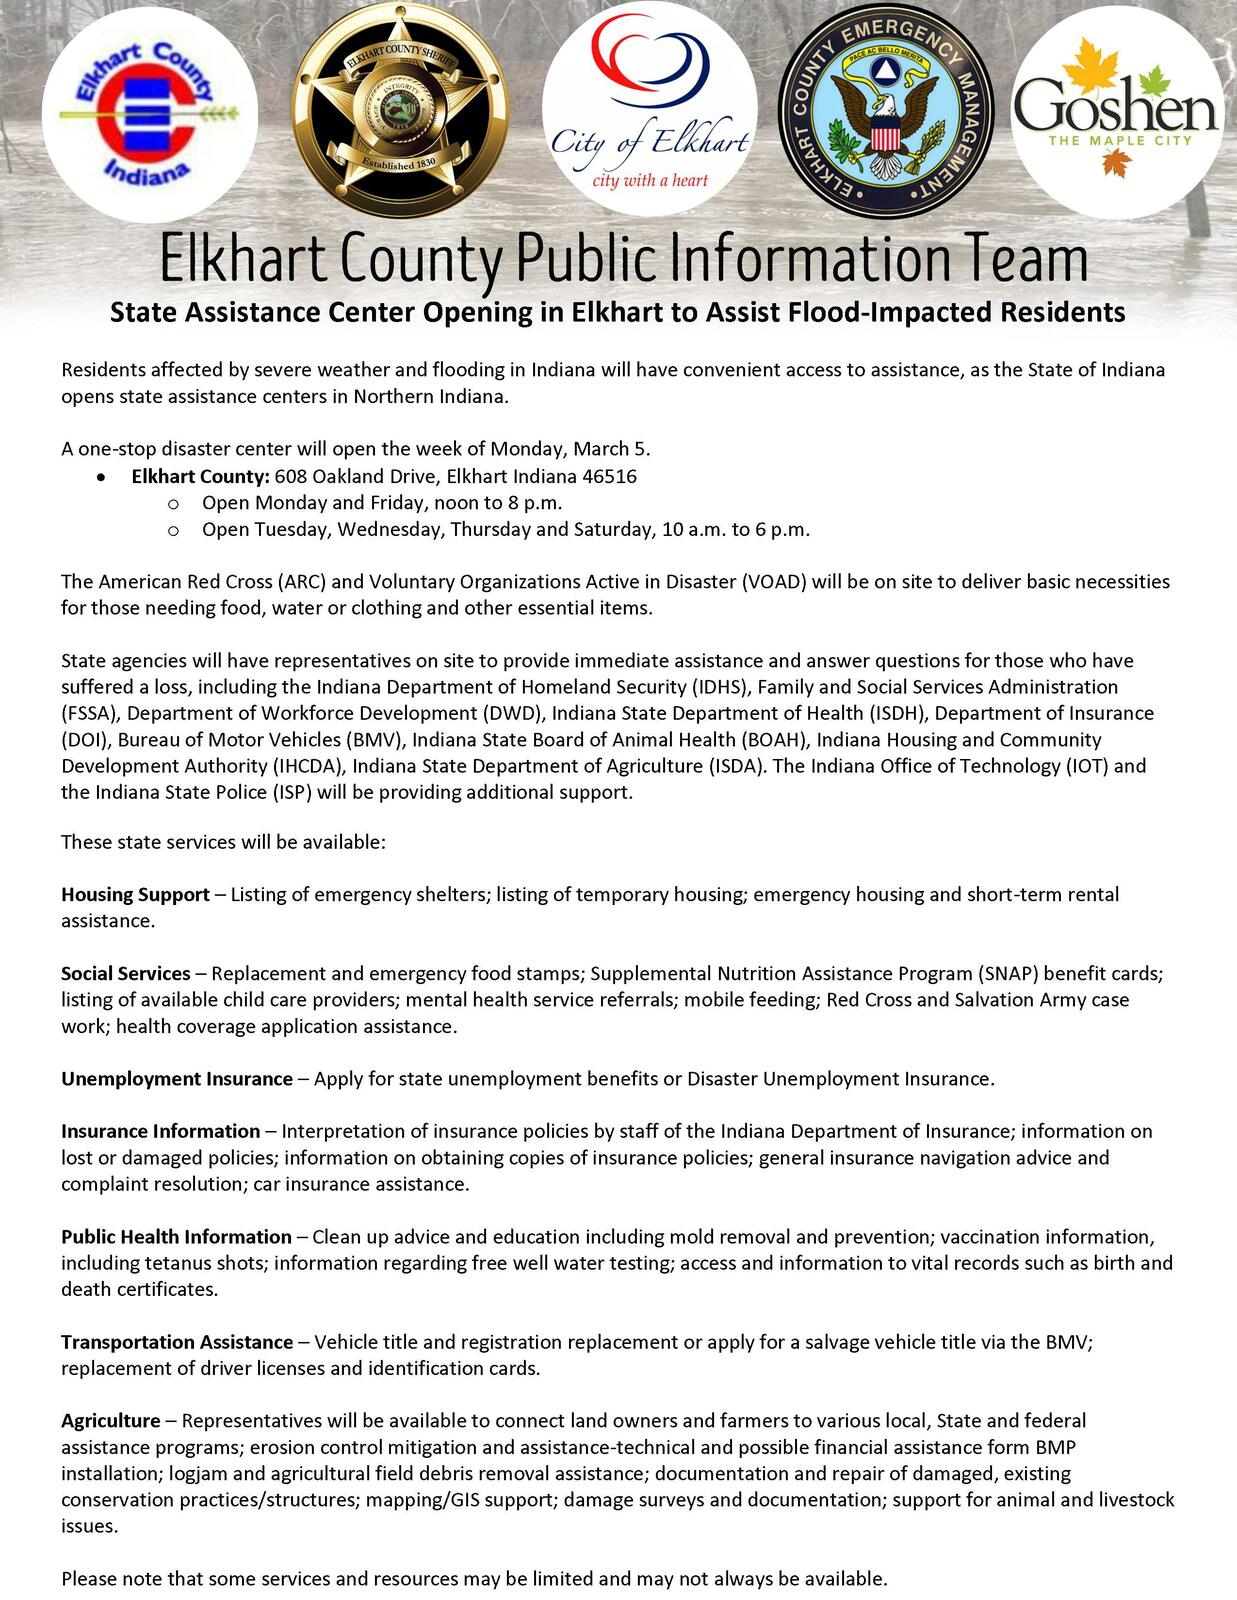 state assistance center opening in elkhart to assist flood impacted residents elkhart county sheriffs department nextdoor - Rental Assistance Form